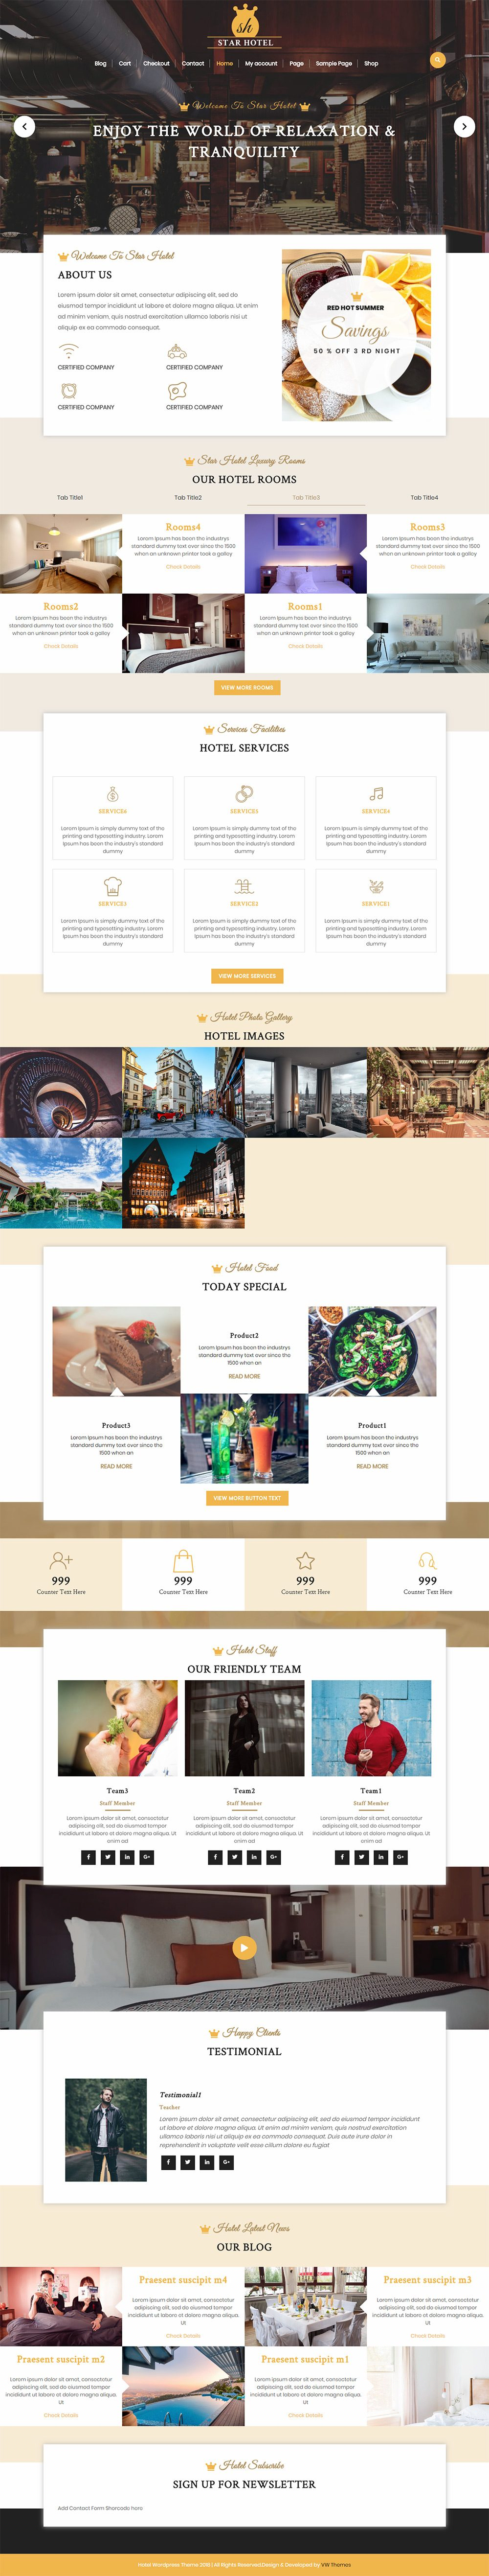 WordPress Hotel Theme